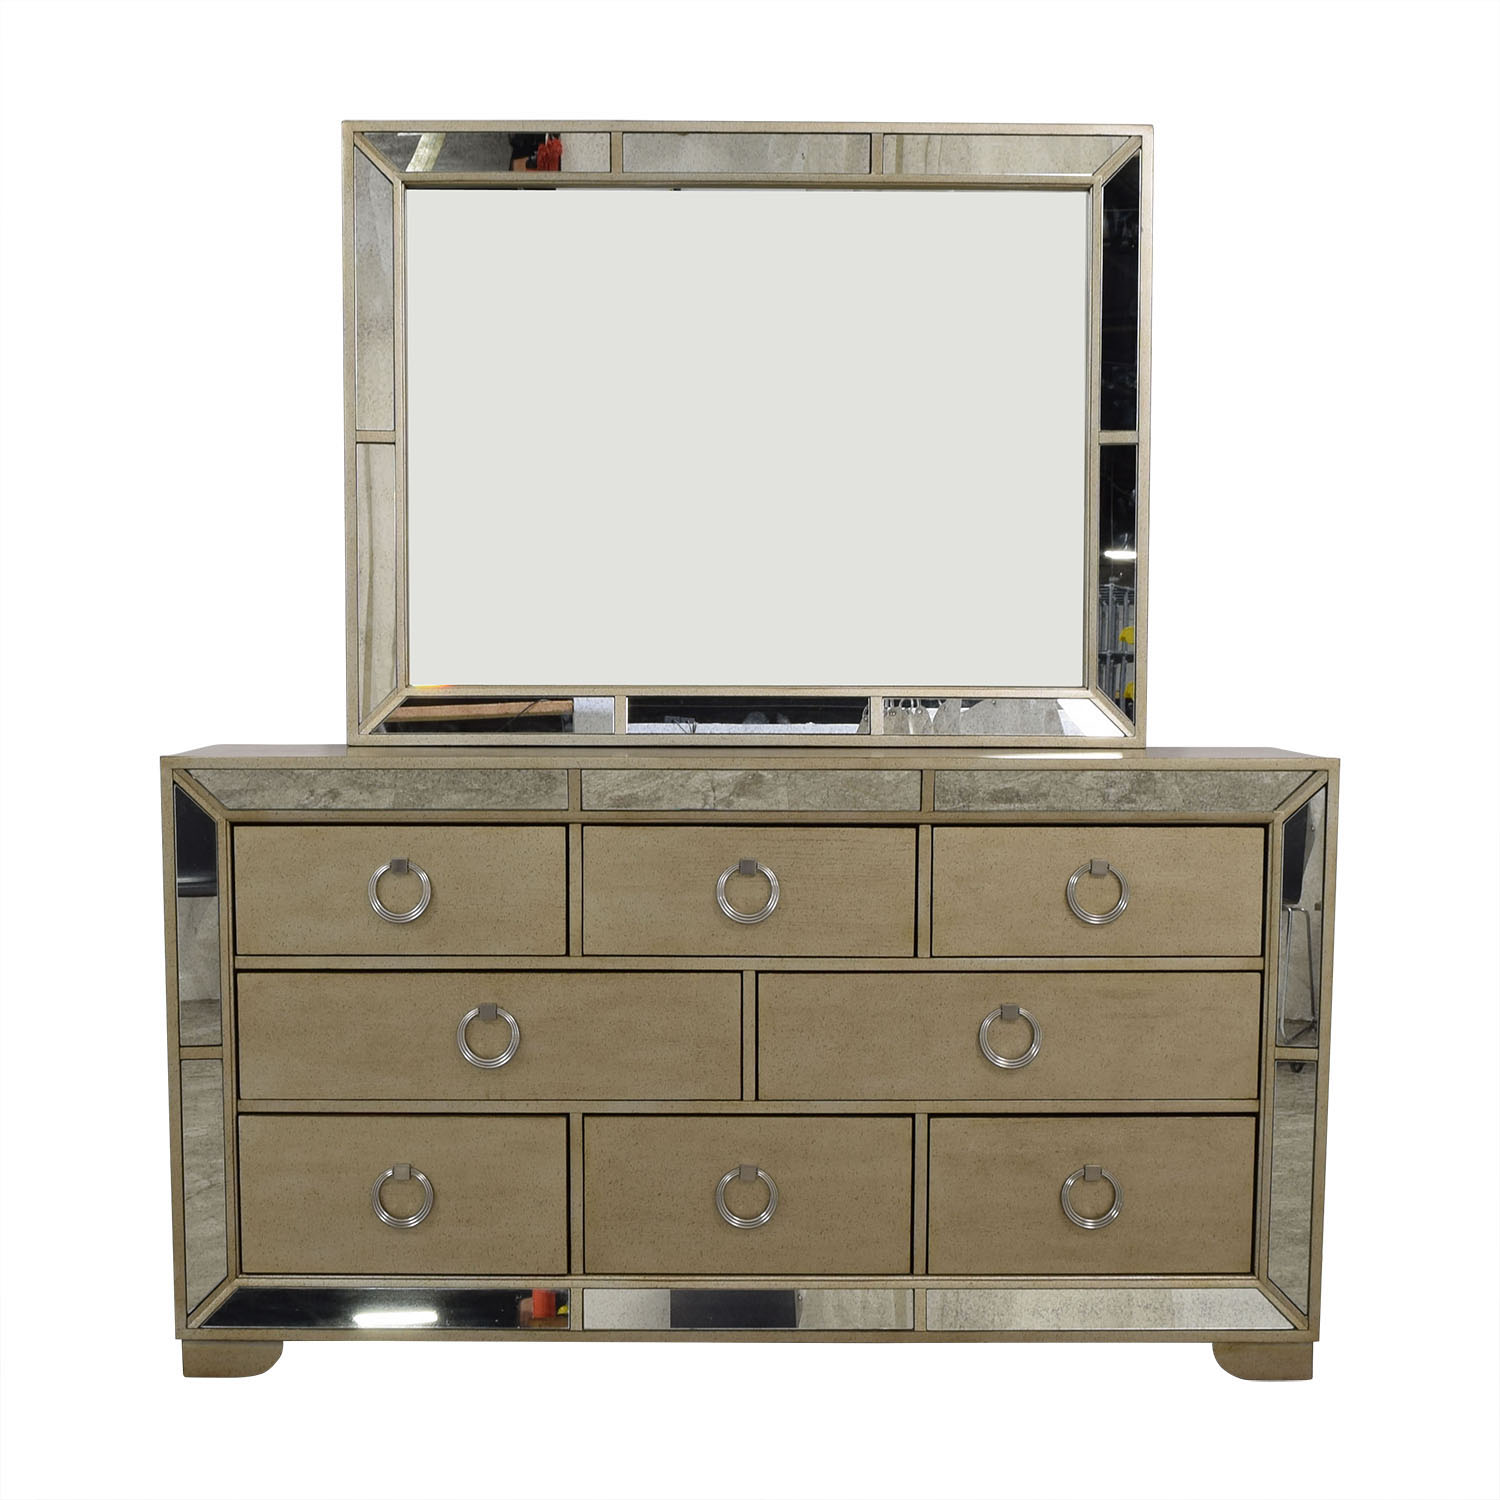 Macy's Macy's Ailey Eight-Drawer Dresser with Mirror and Trim coupon